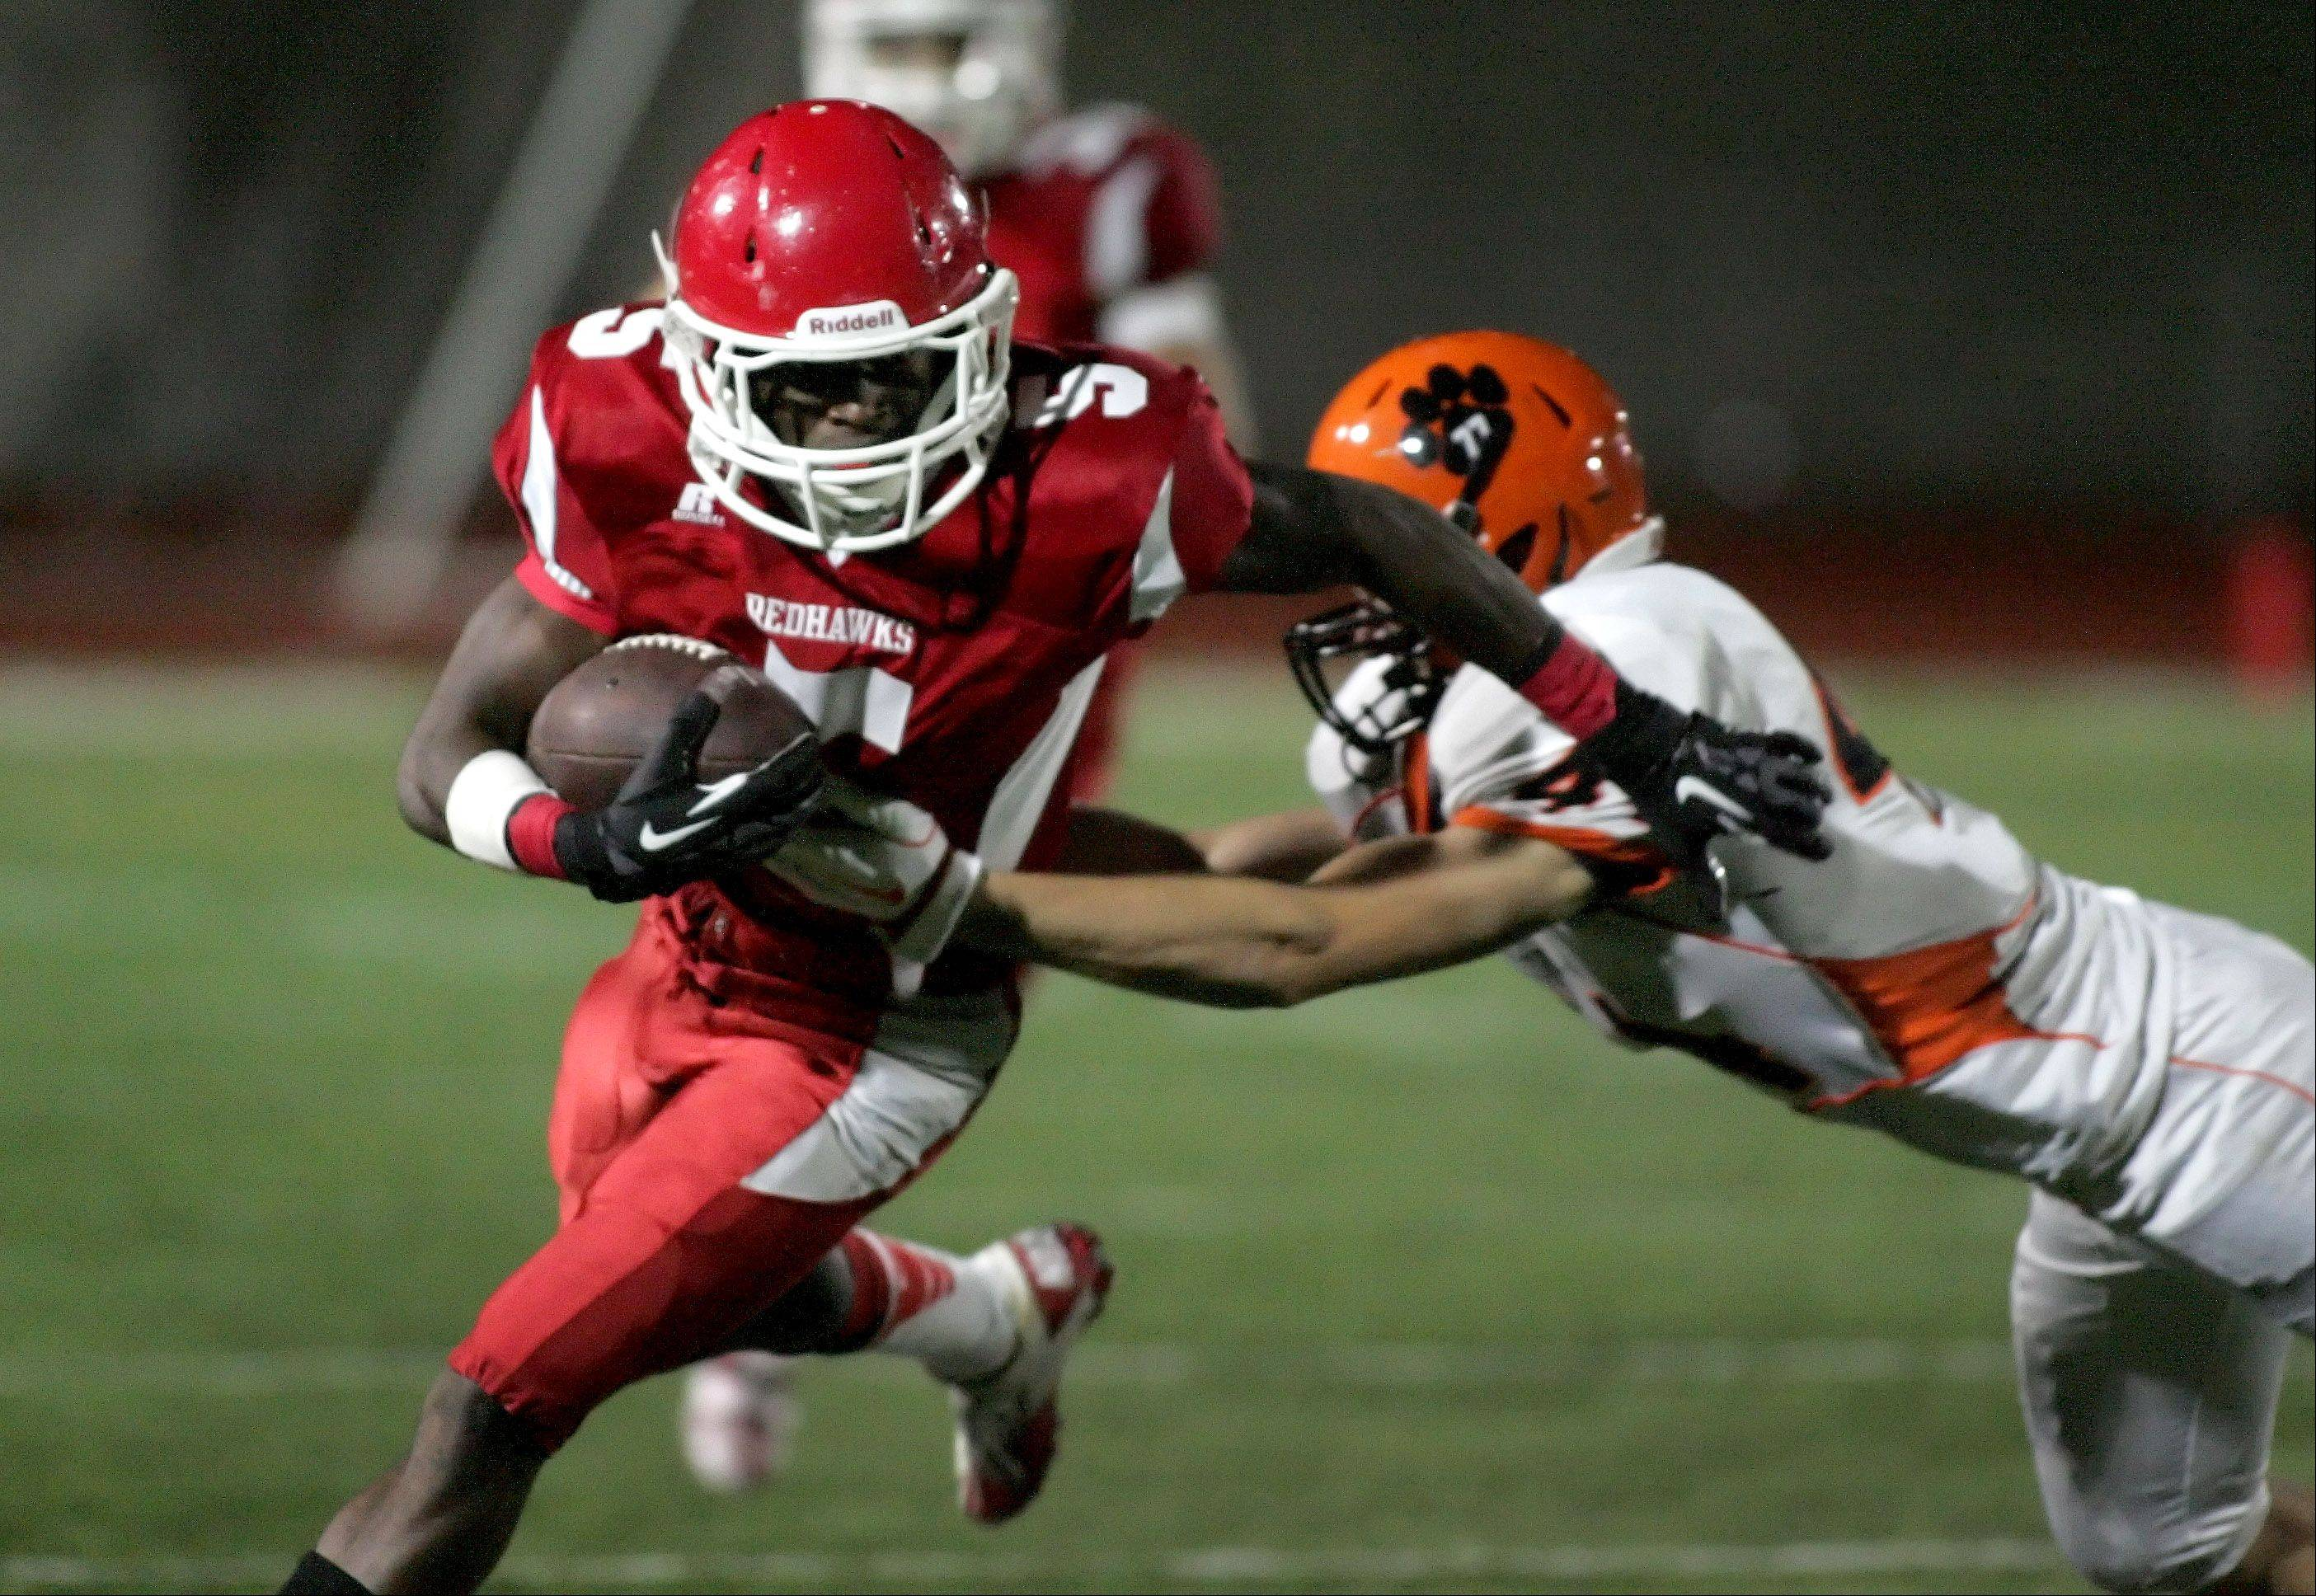 Bev Horne/bhorne@dailyherald.com Lasoda Thompson of Naperville Central eludes a tackle by Wheaton Warrenville South in football action on Friday in Naperville.